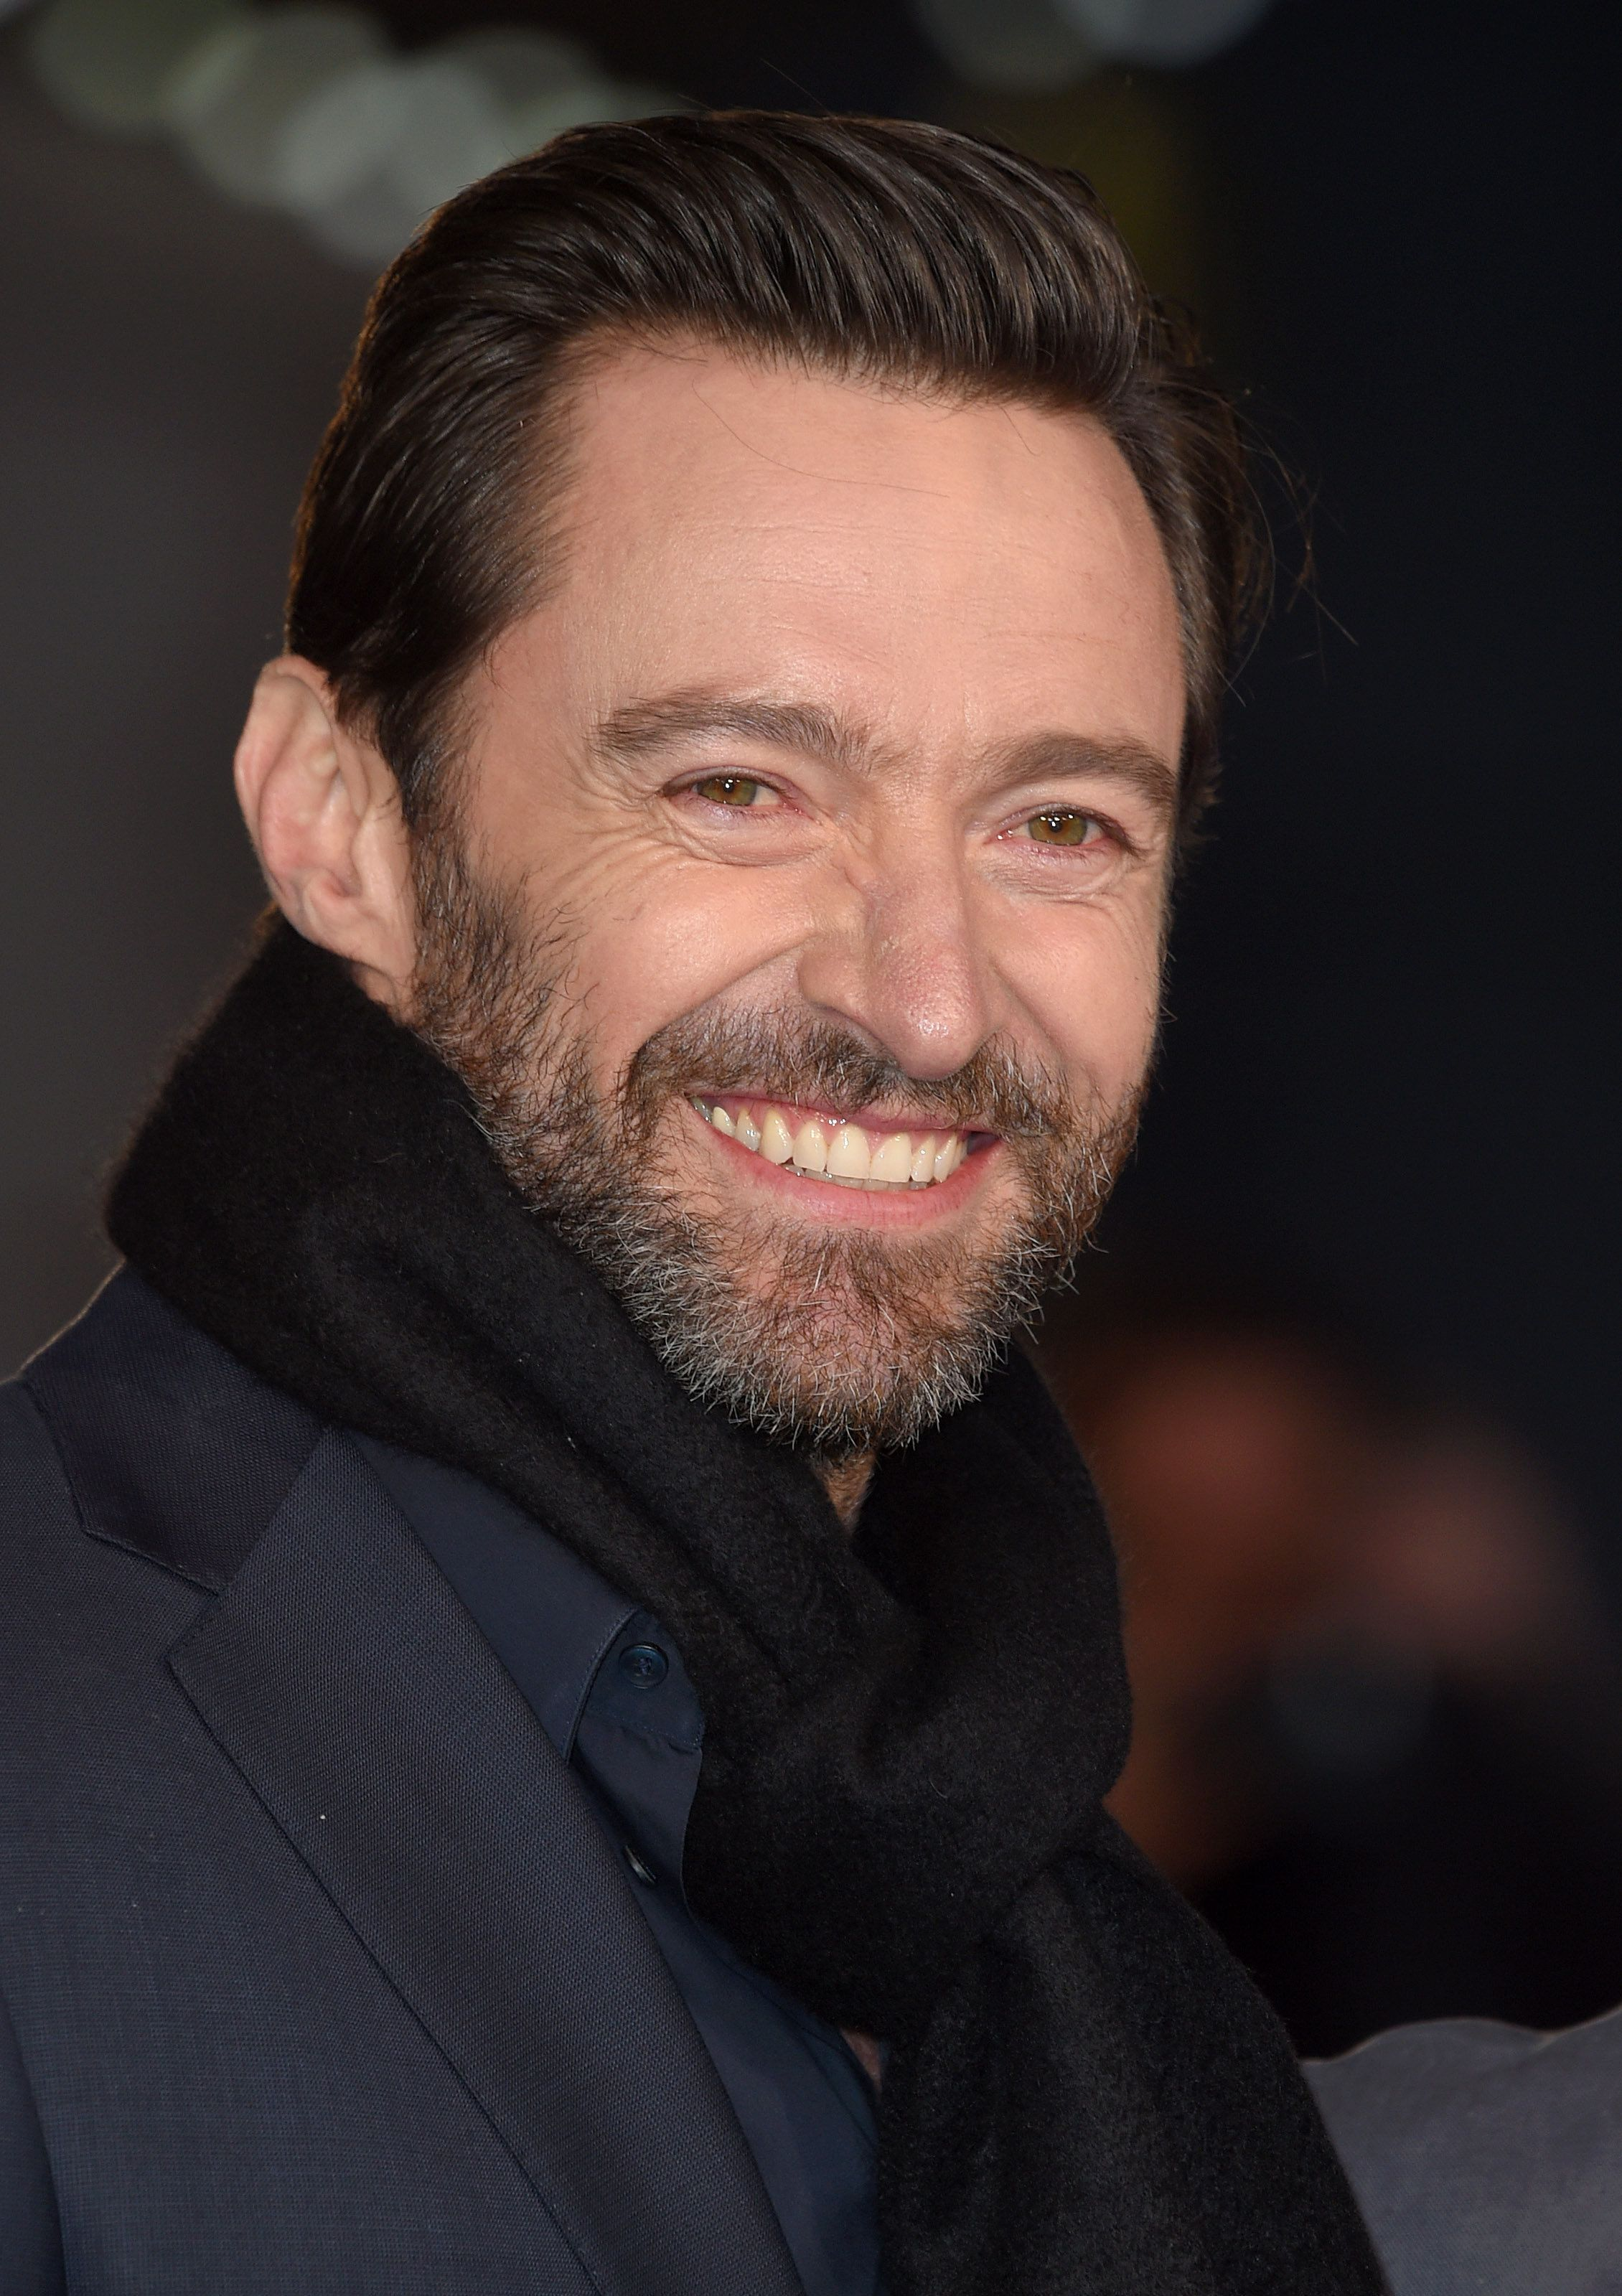 LONDON, ENGLAND - MARCH 17:  Hugh Jackman arrives for the European premiere of 'Eddie The Eagle' at Odeon Leicester Square on March 17, 2016 in London, England.  (Photo by Karwai Tang/WireImage)